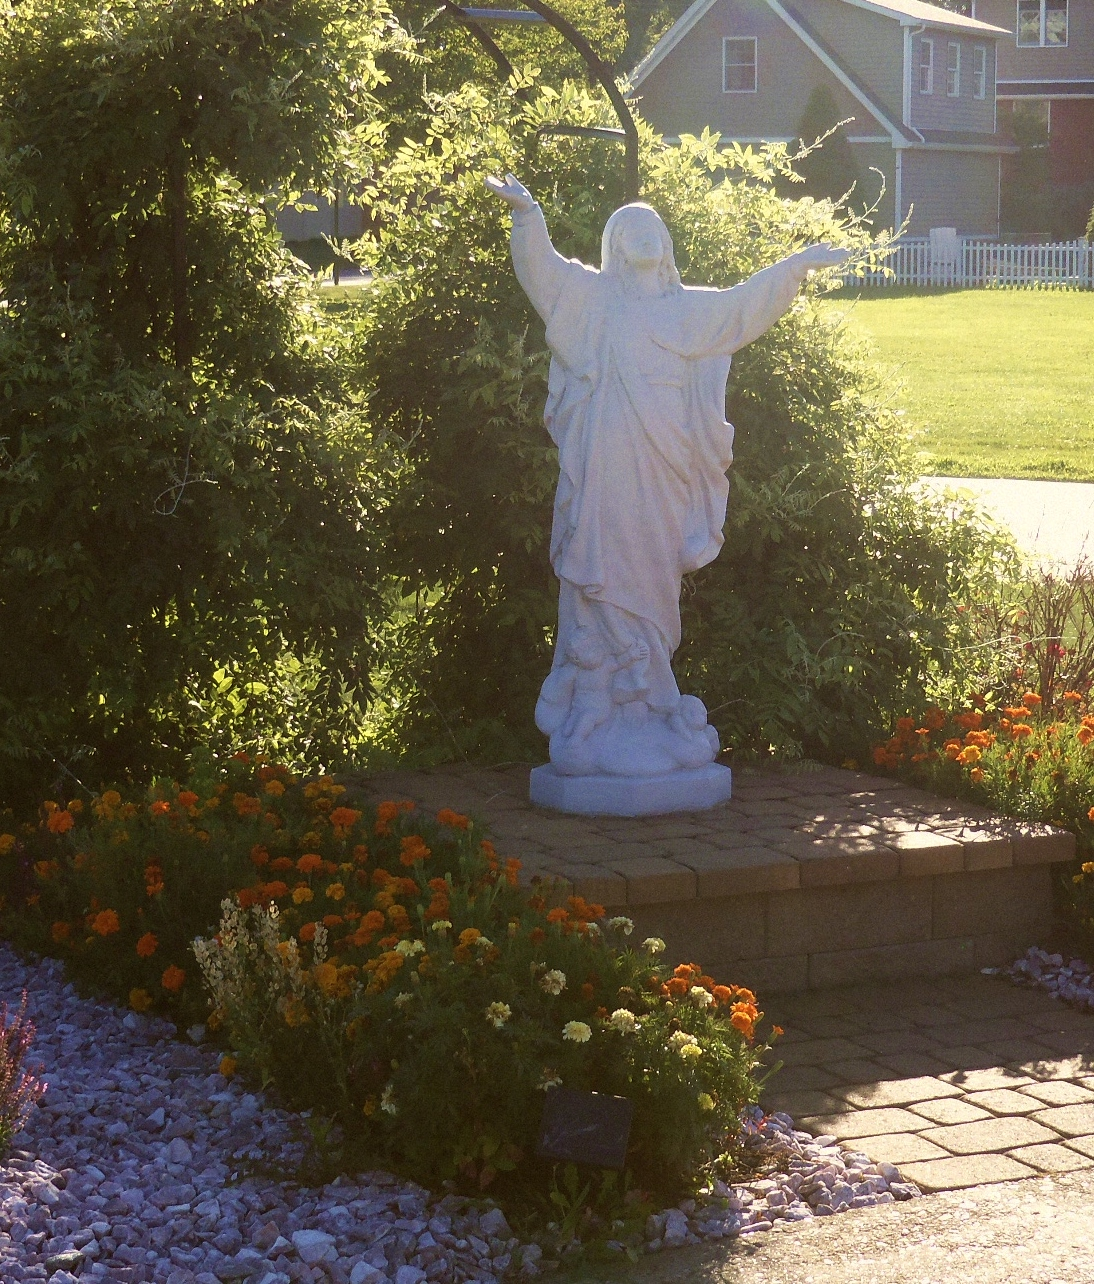 Statue of Mary outside of a church.